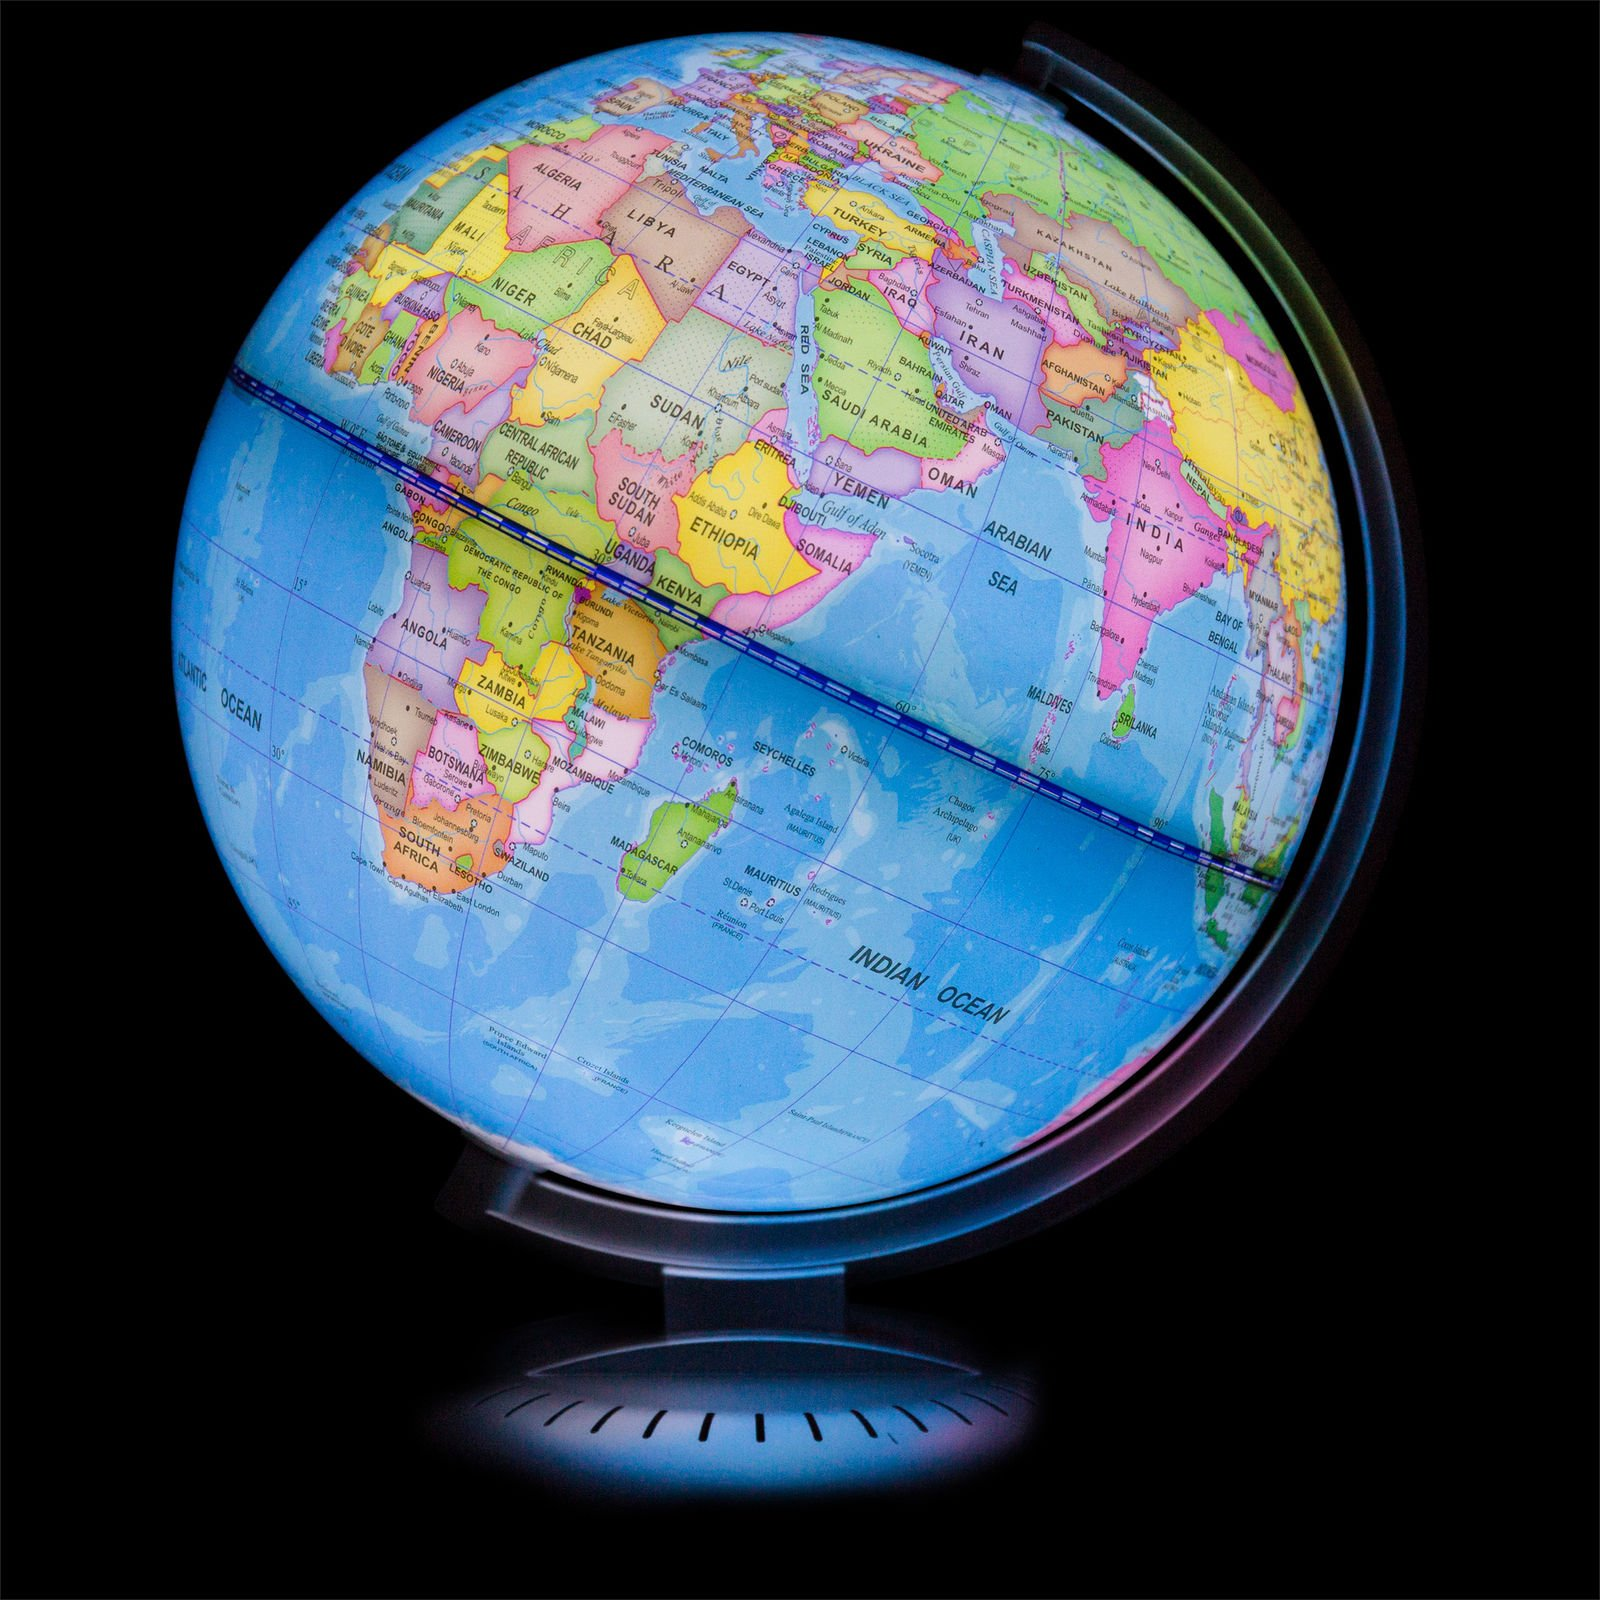 Illuminated World Globe - Multicolor With LED Lights (8 inch) by Blossom Store (Image #3)